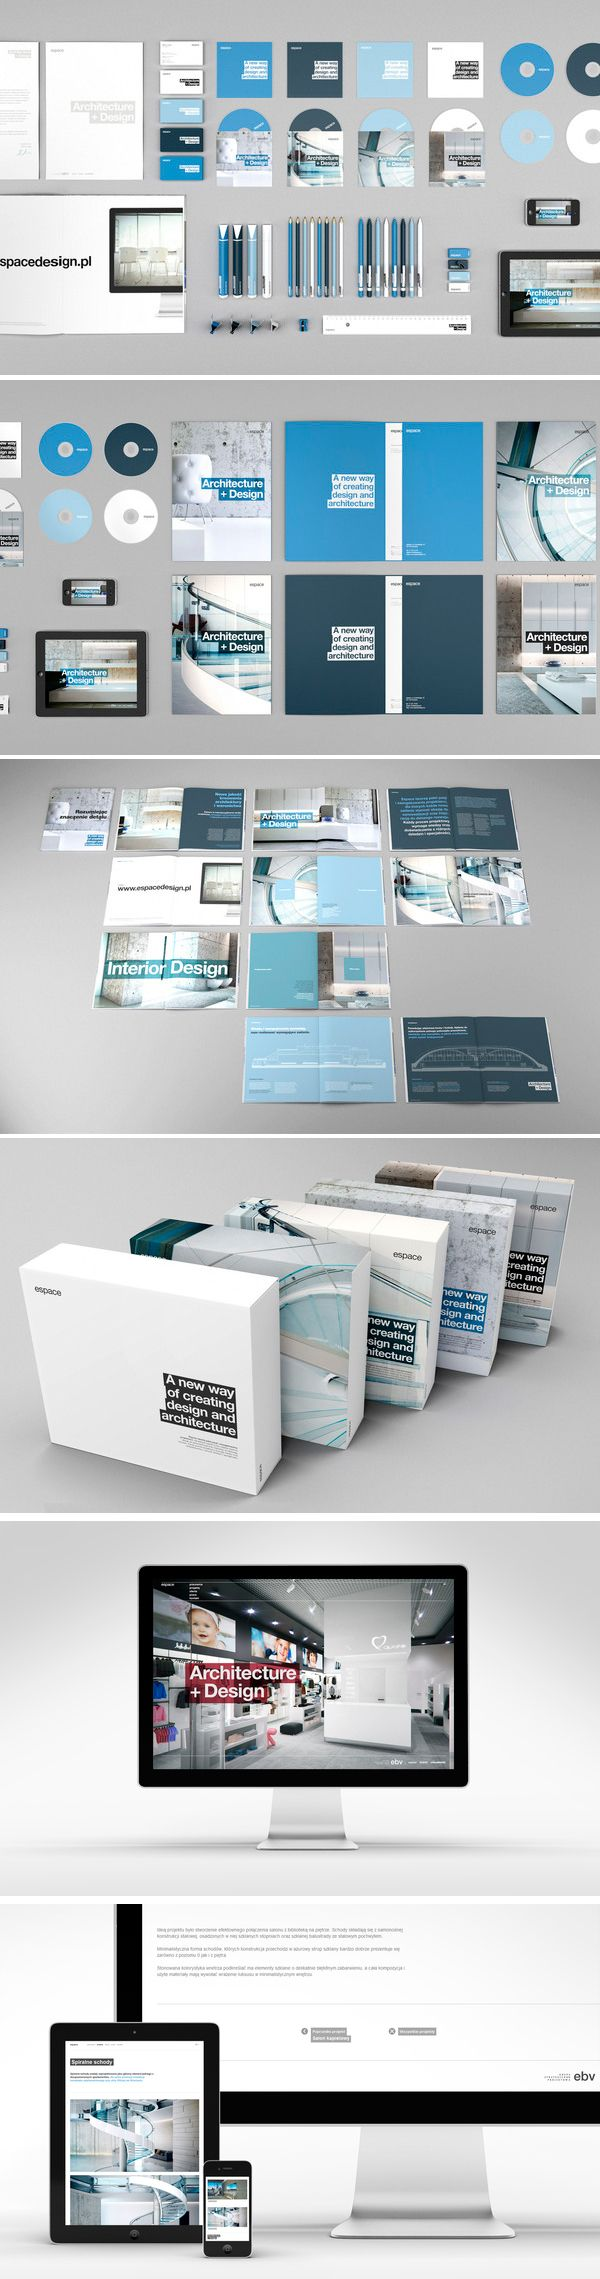 espace architecture + design #identity #packaging #branding PD